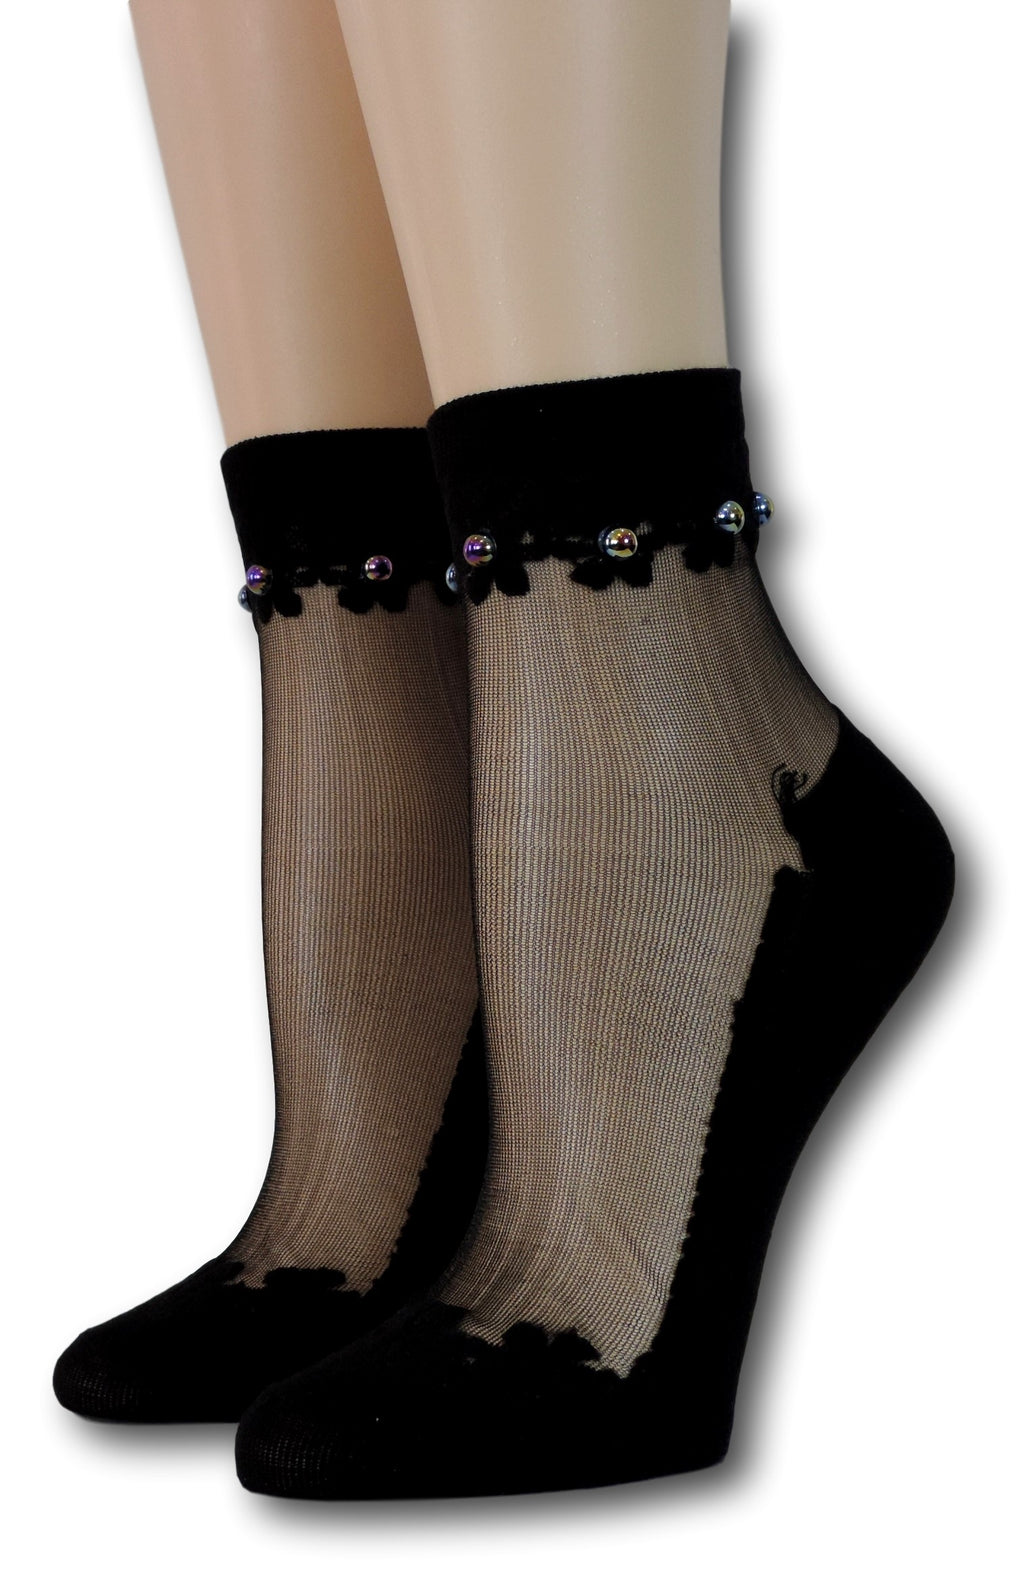 Black Elegant Sheer Socks with beads